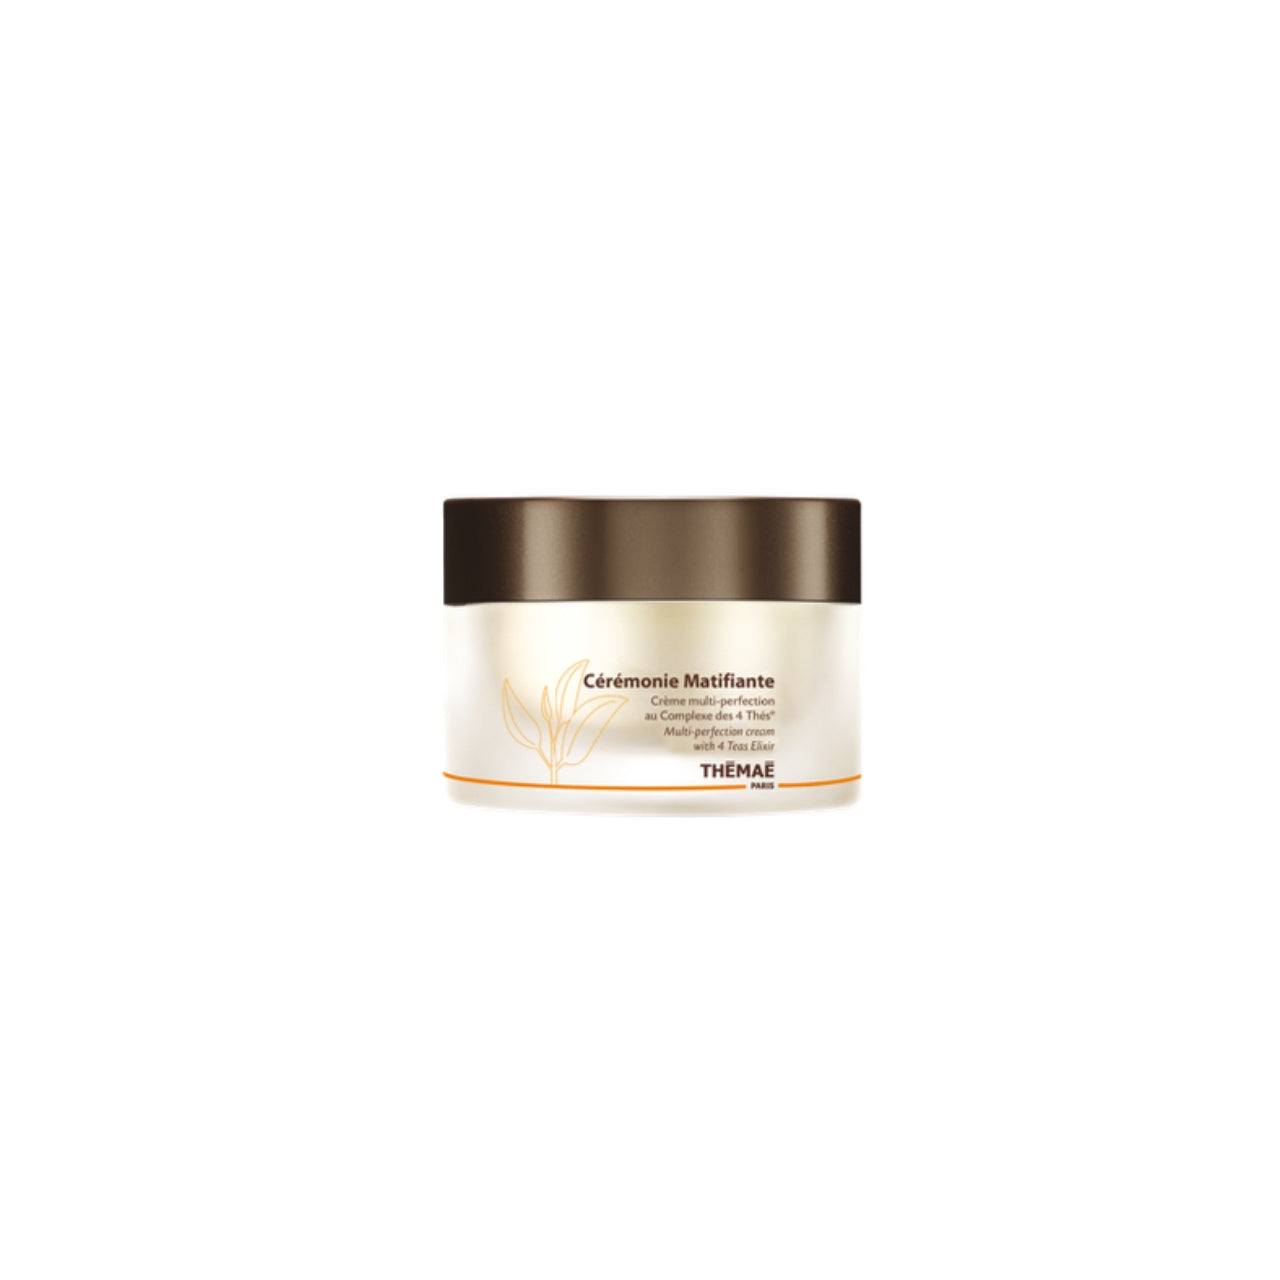 THEMAE Multi-perfection cream